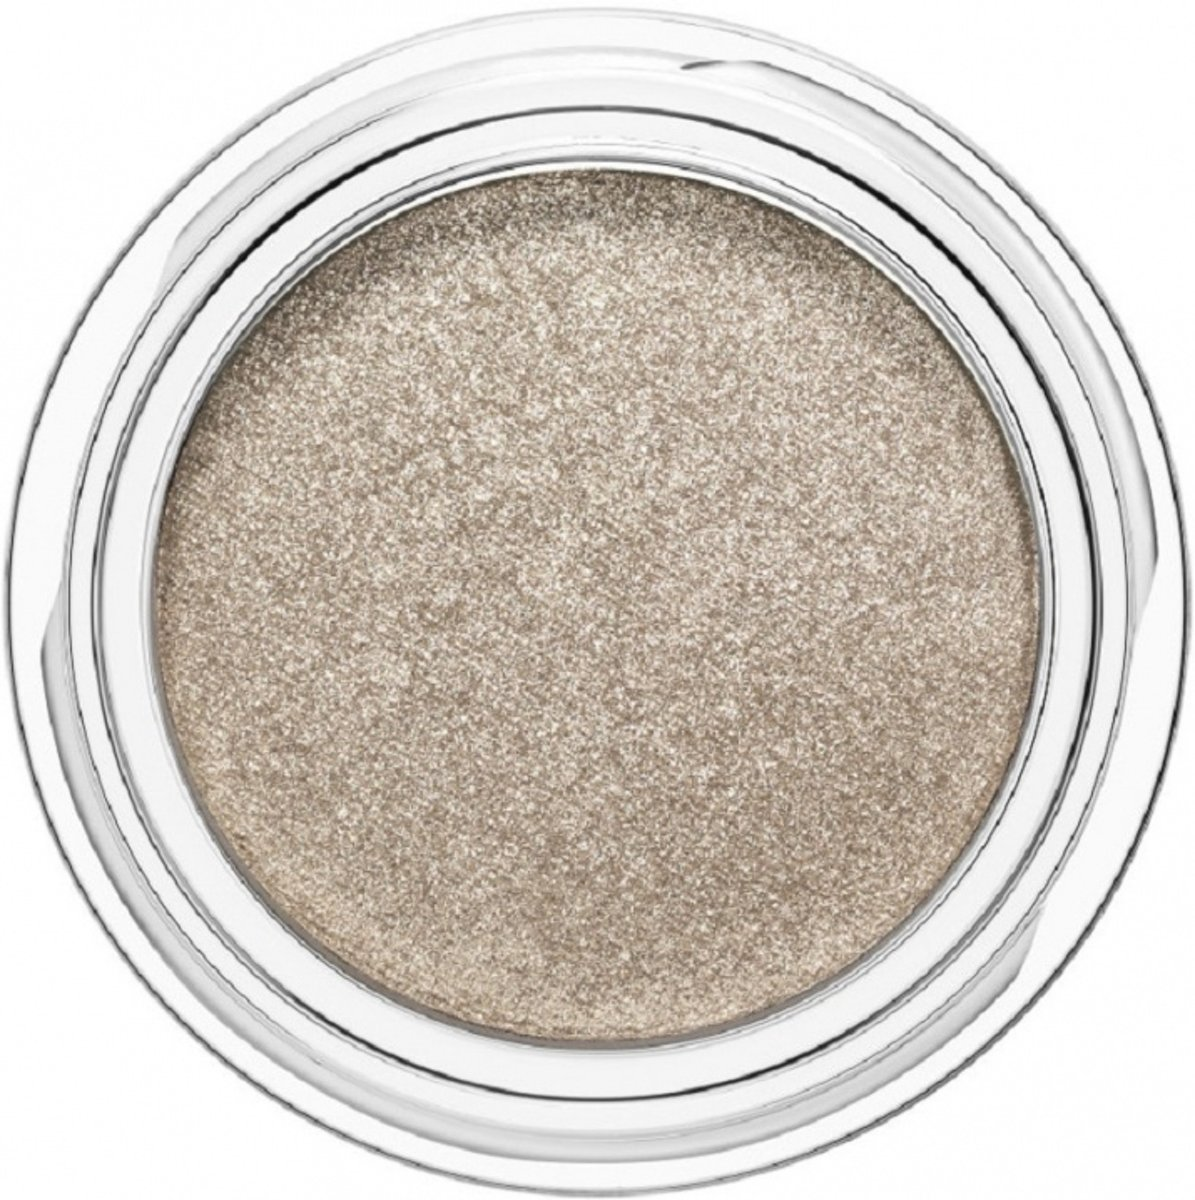 Clarins Ombre Iridescente Oogschaduw 7 gr. - 04 - Silver Ivory